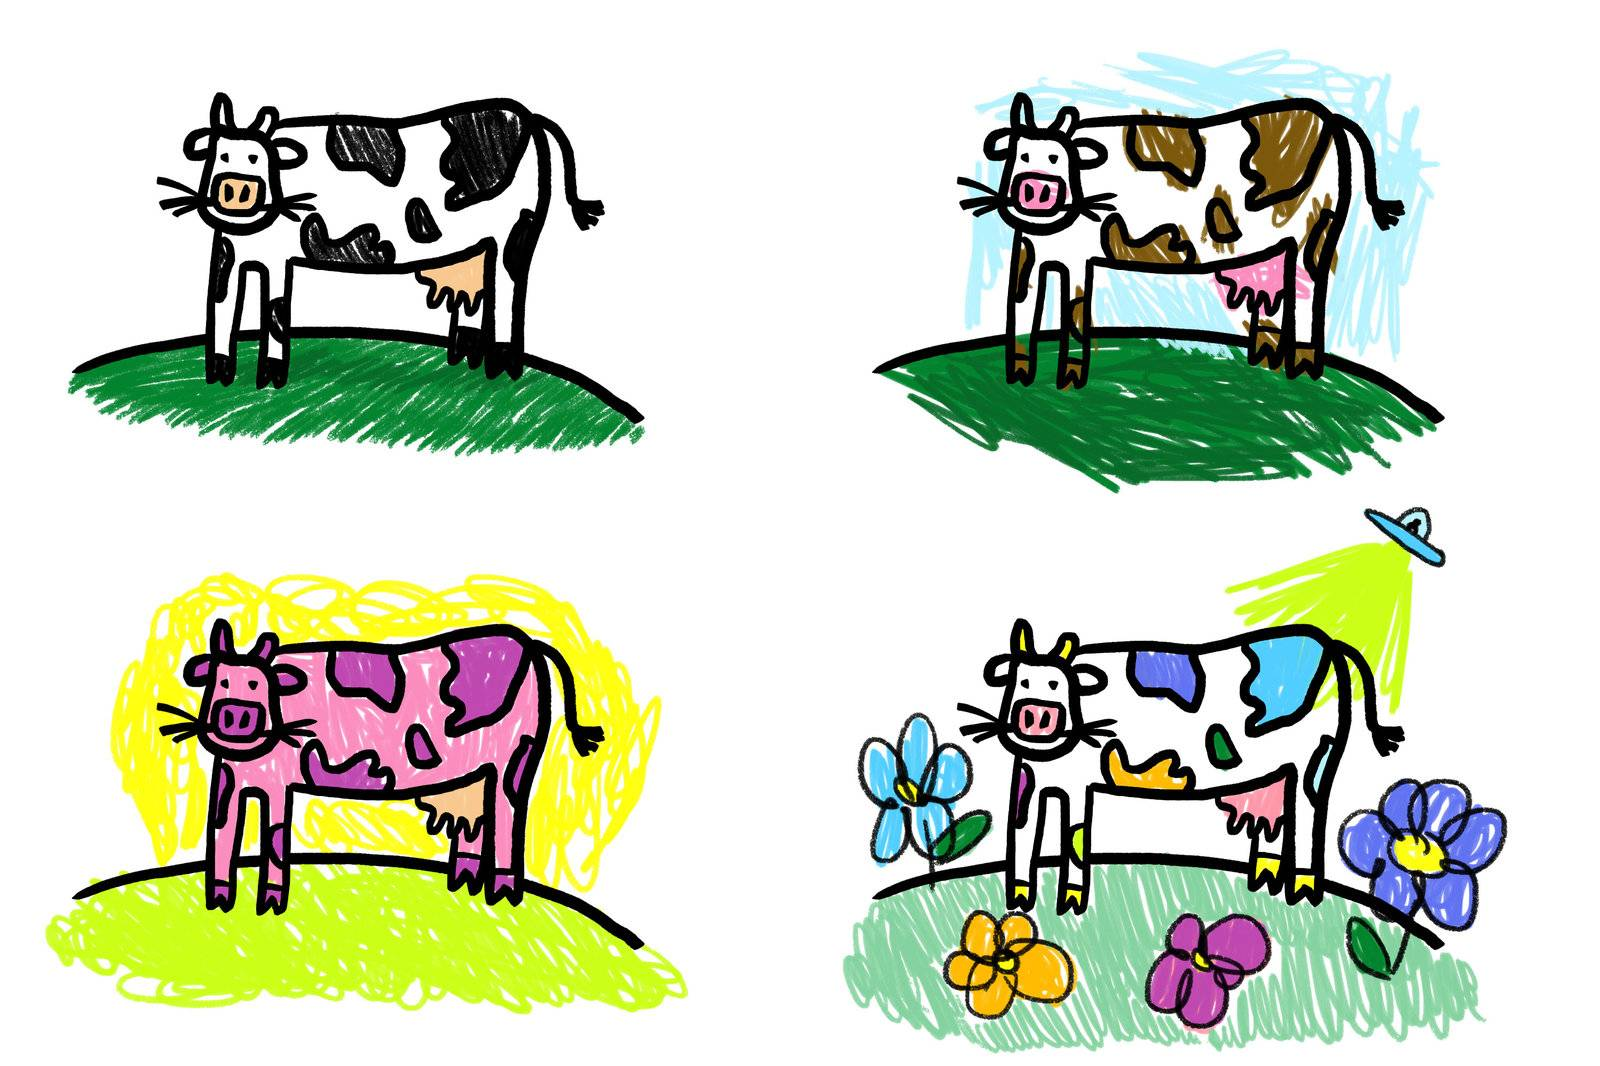 Cows on a coloring book